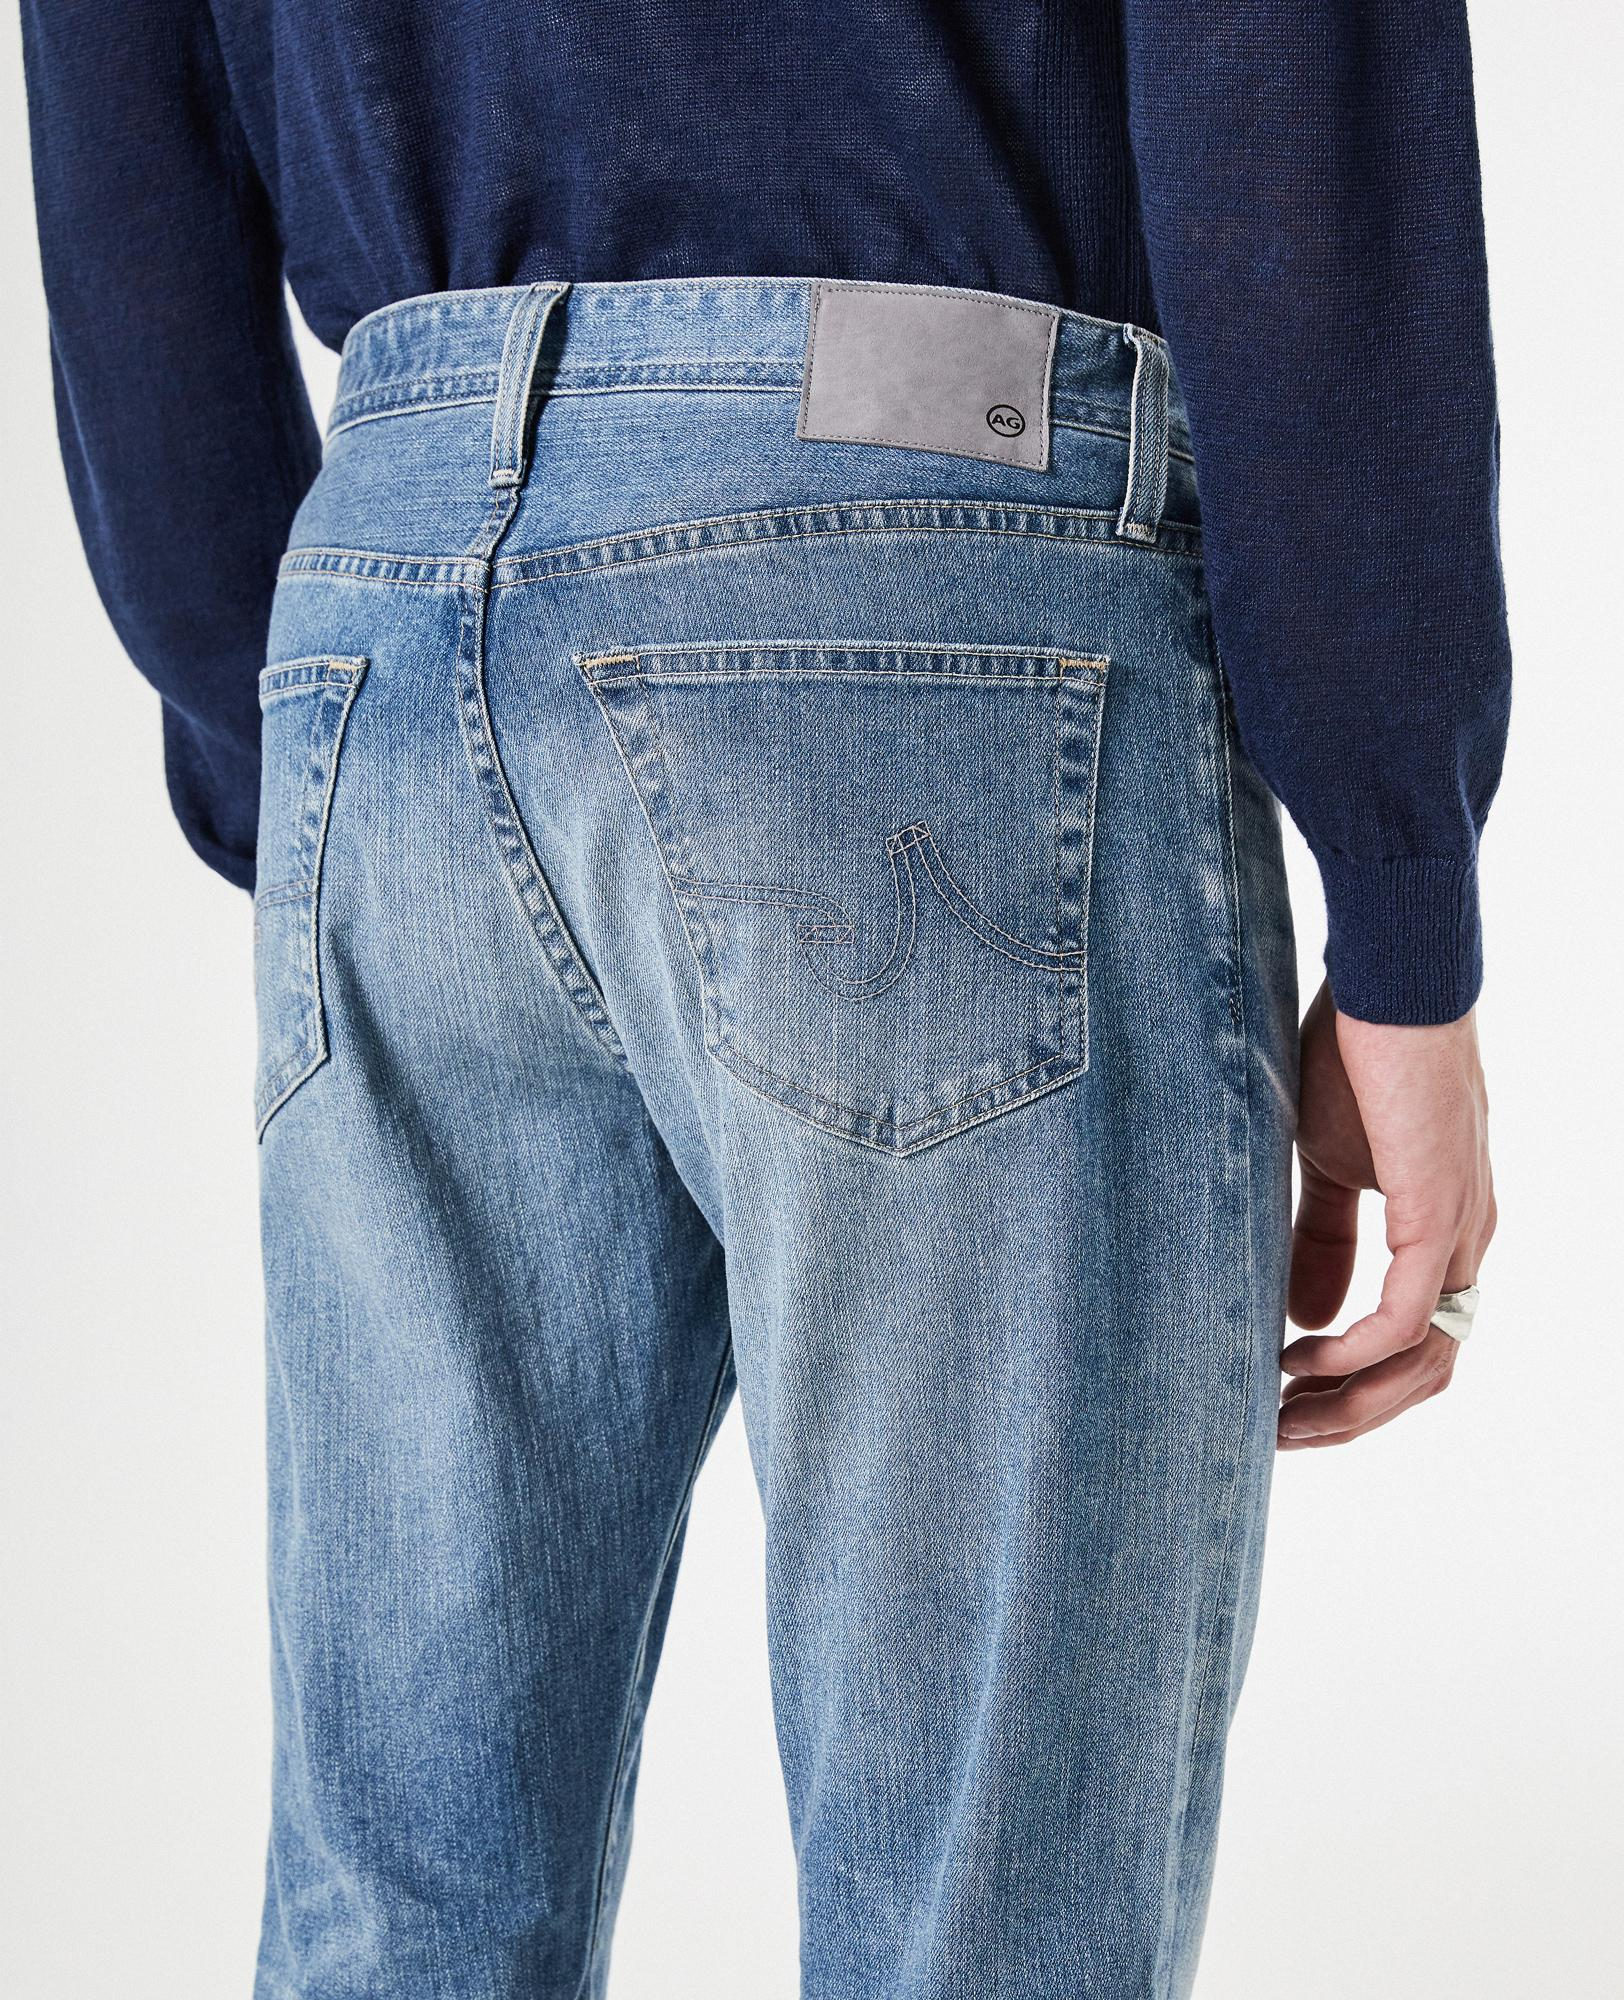 Girl wears short skirt made of jeans that covers her big ass